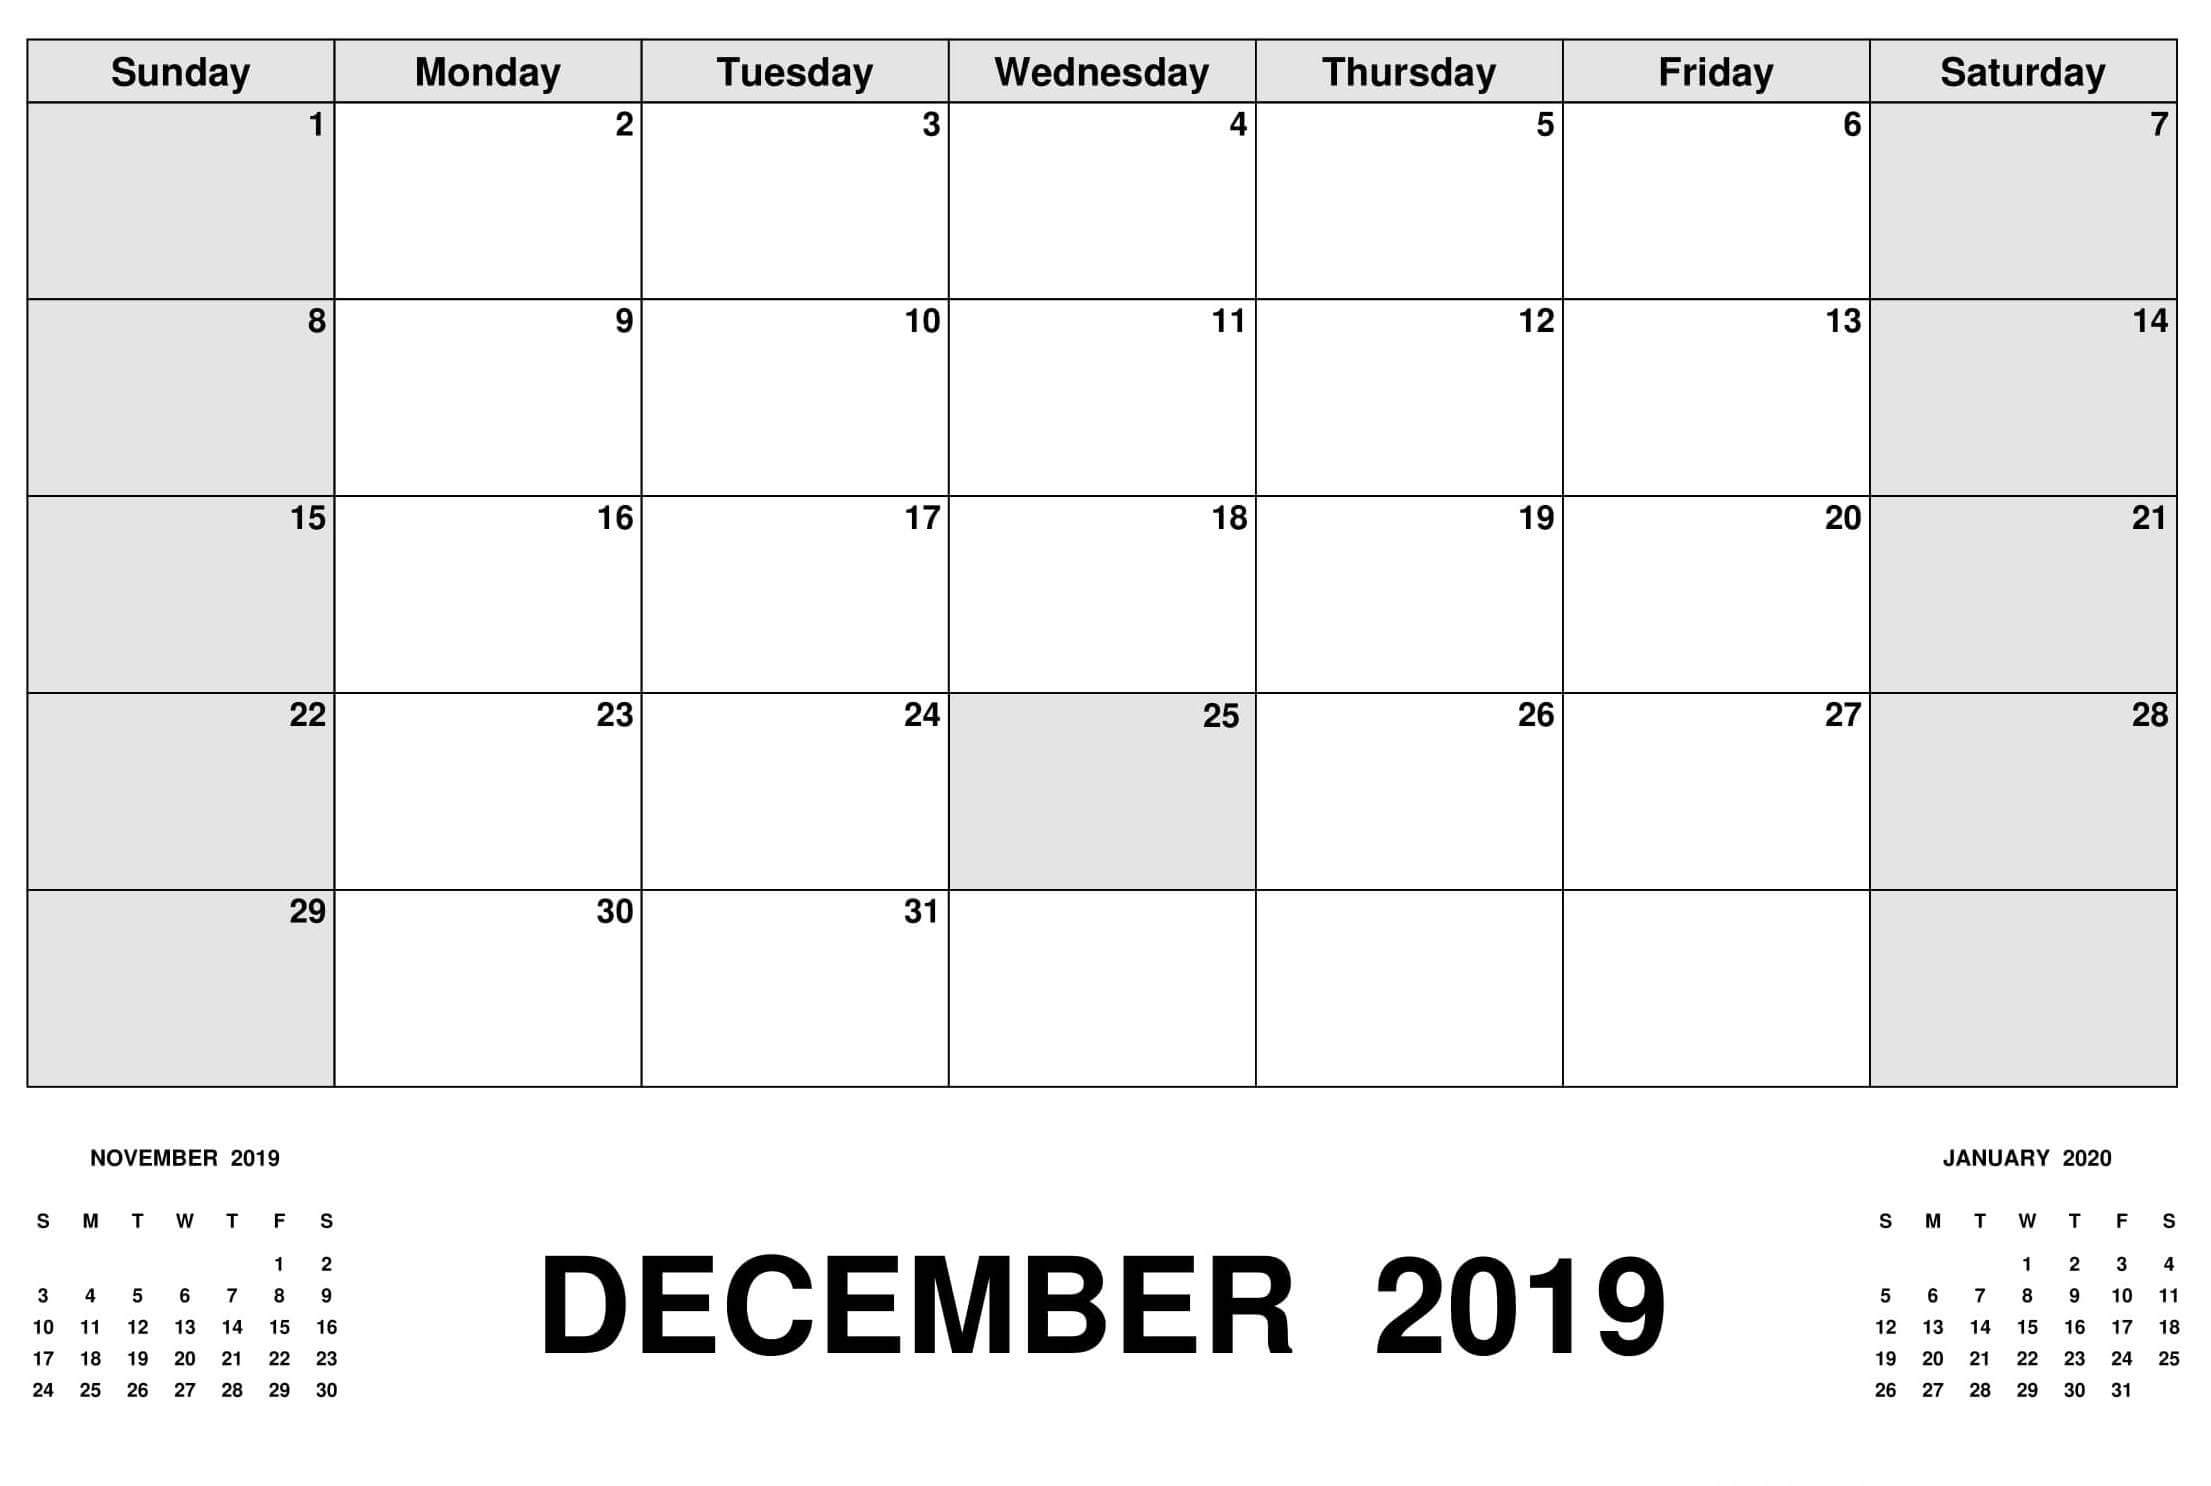 Fillable Calendar For December 2019 Template